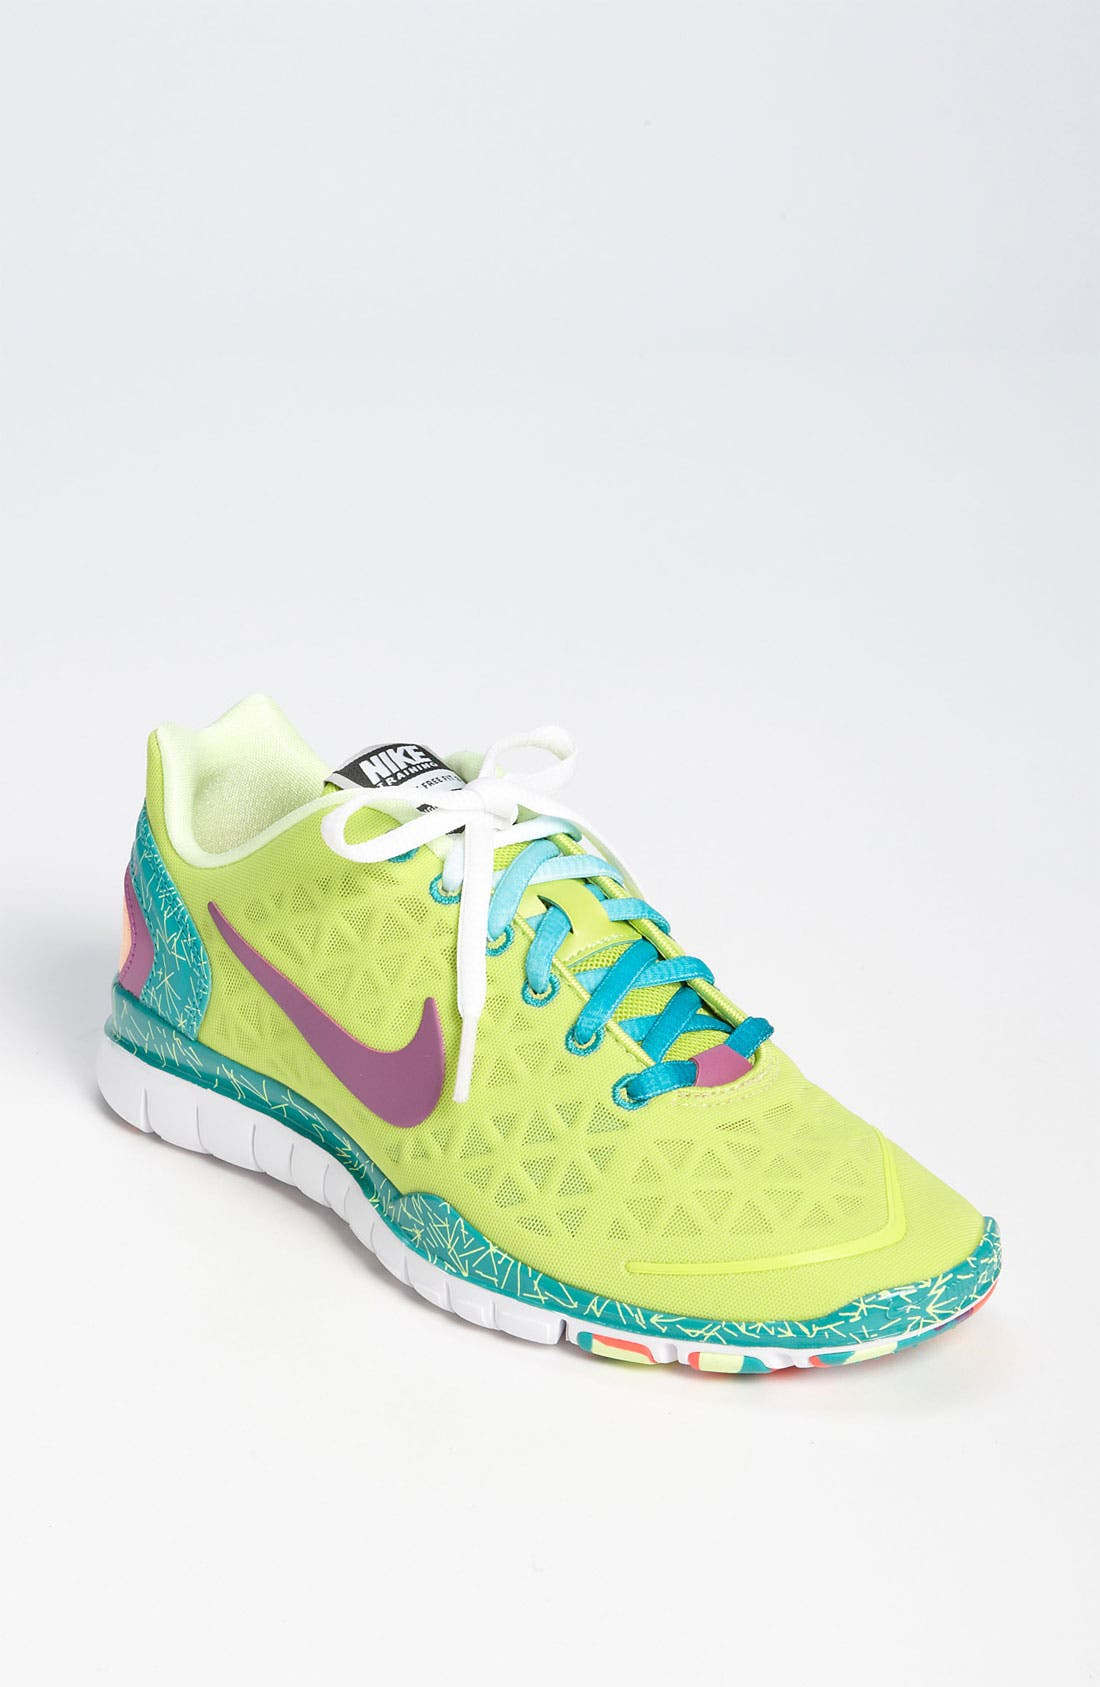 NIKE 'Free Fit 2' Training Shoe, Main, color, 300